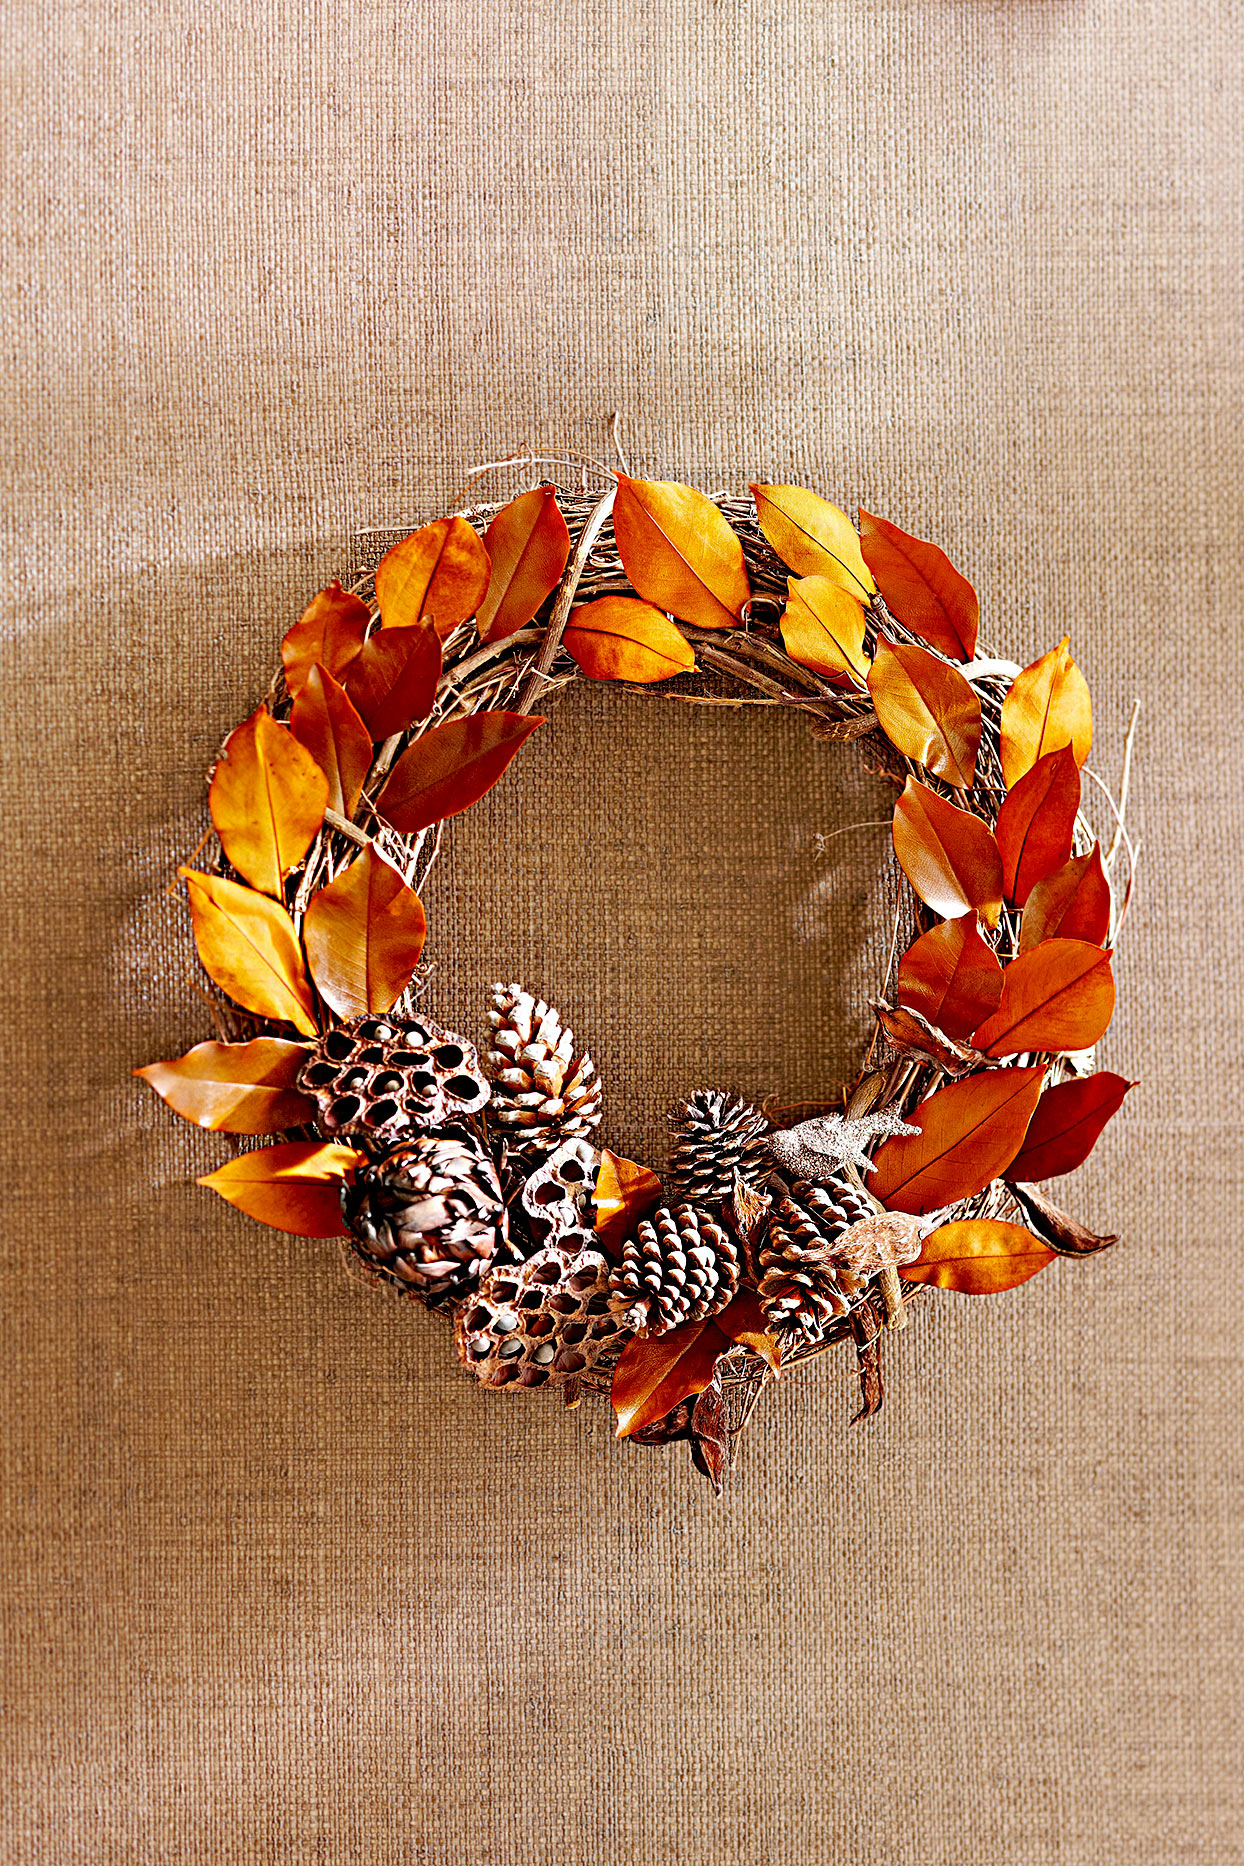 Wreath made of leaves, branches, seed pods, and pinecones